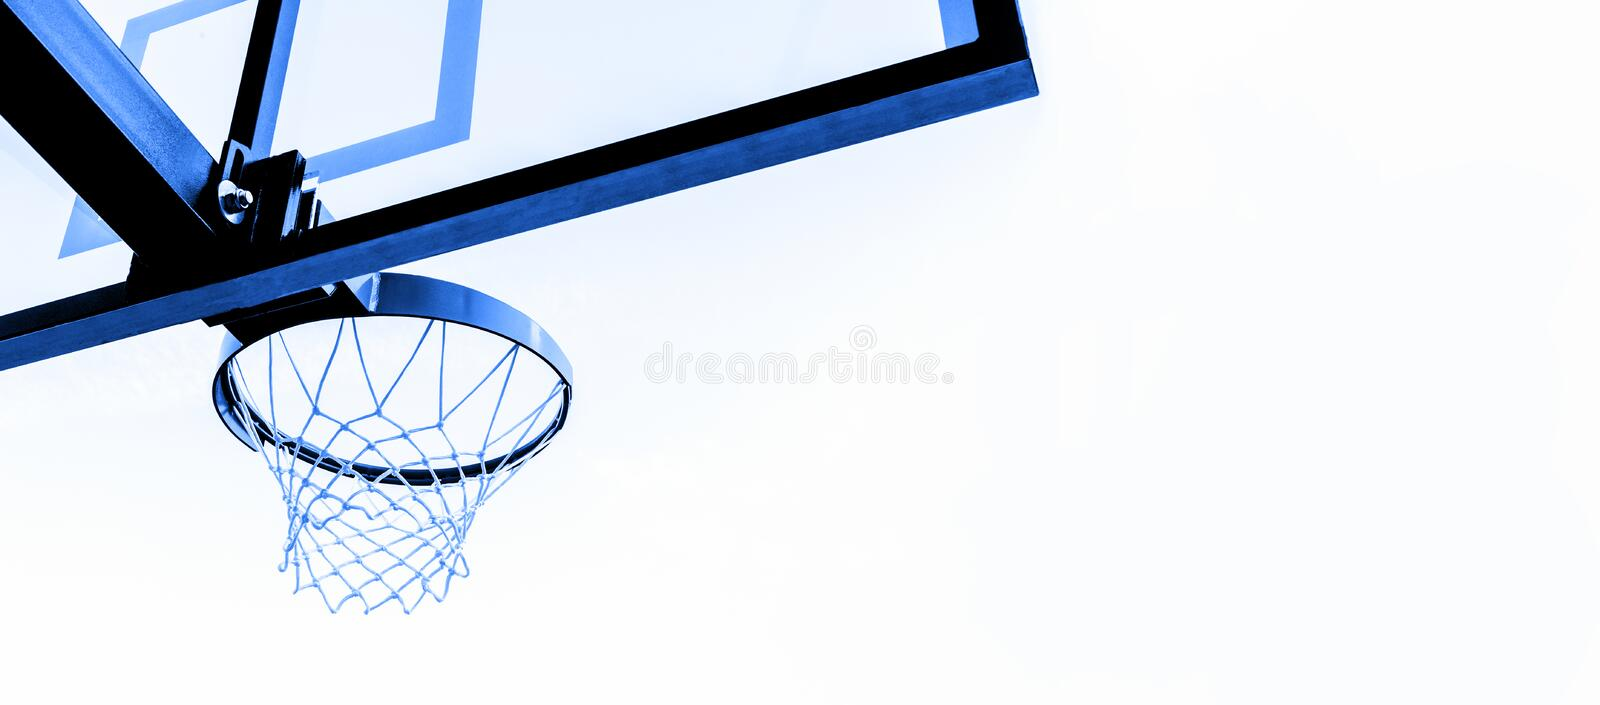 Basketball hoop isolated on white background. Blue filter royalty free stock photography